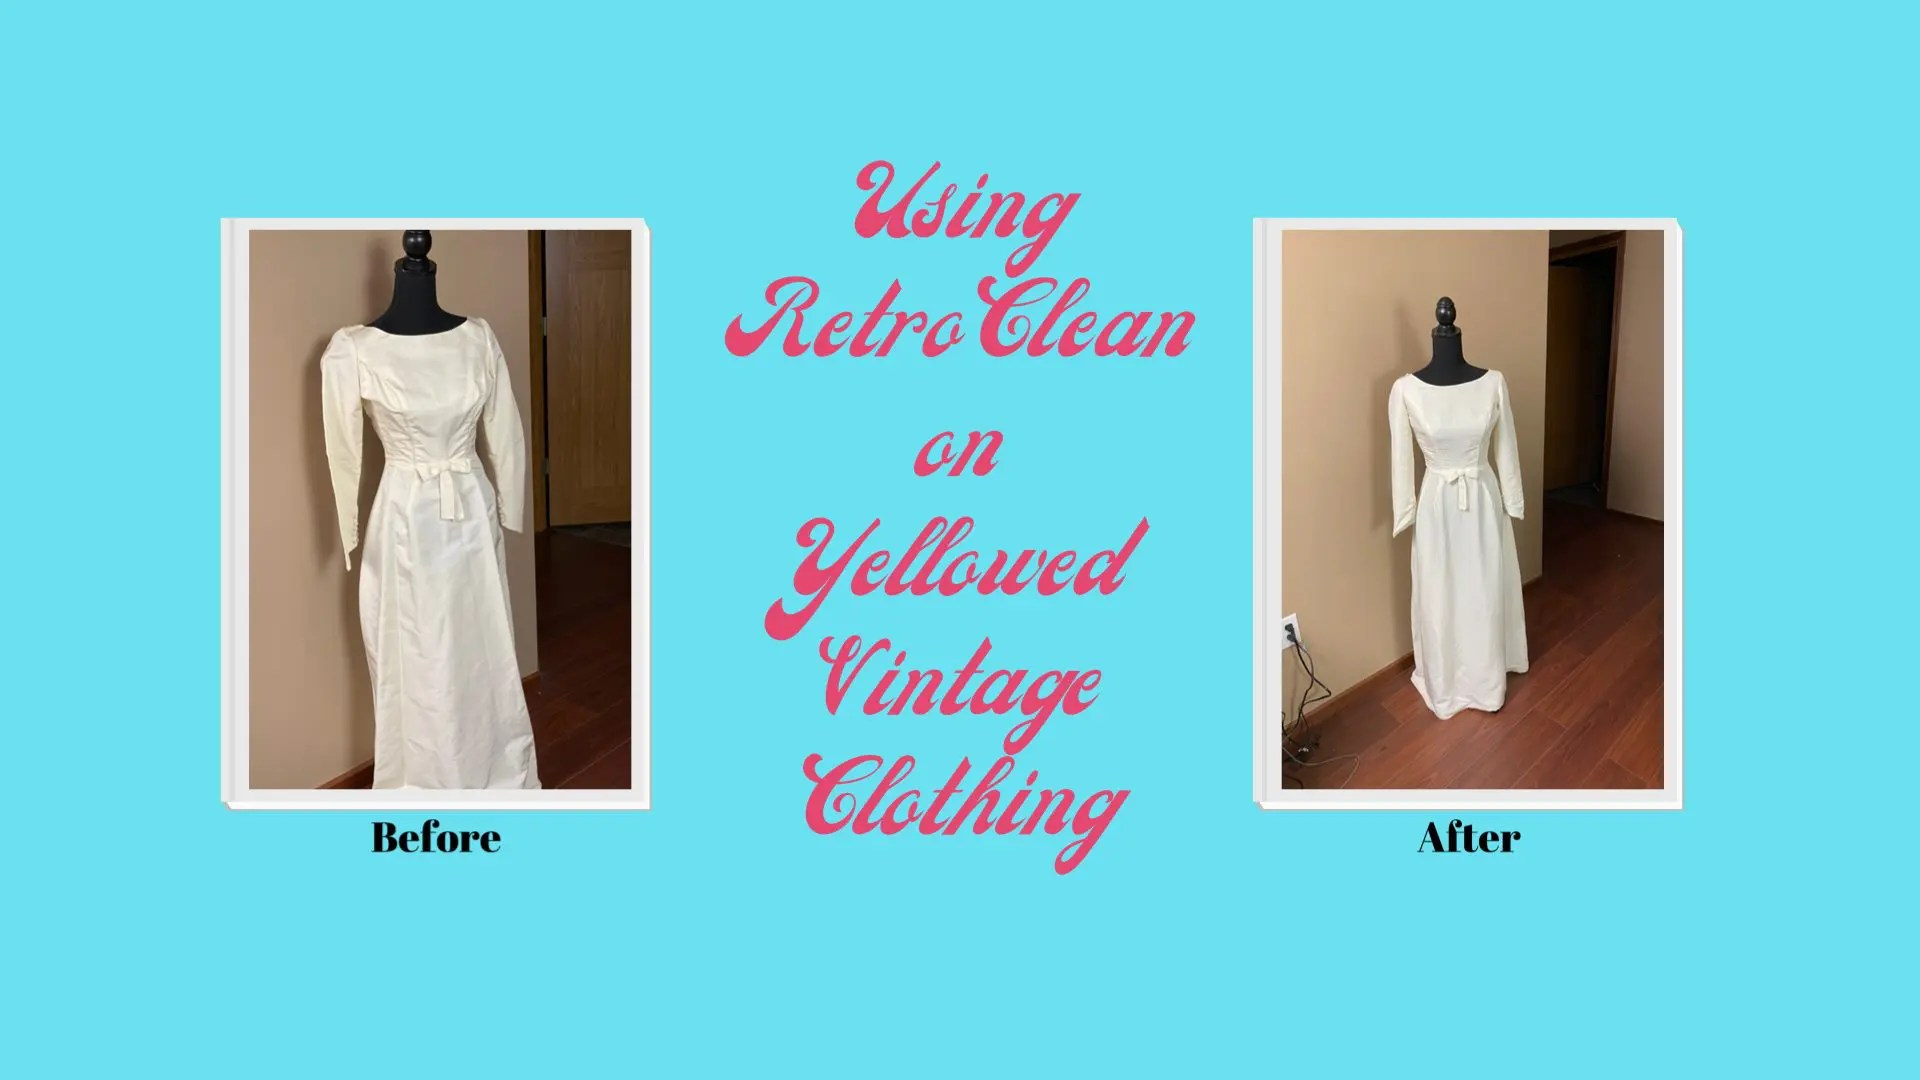 Using Retro Clean to Clean Yellowed Vintage Clothing